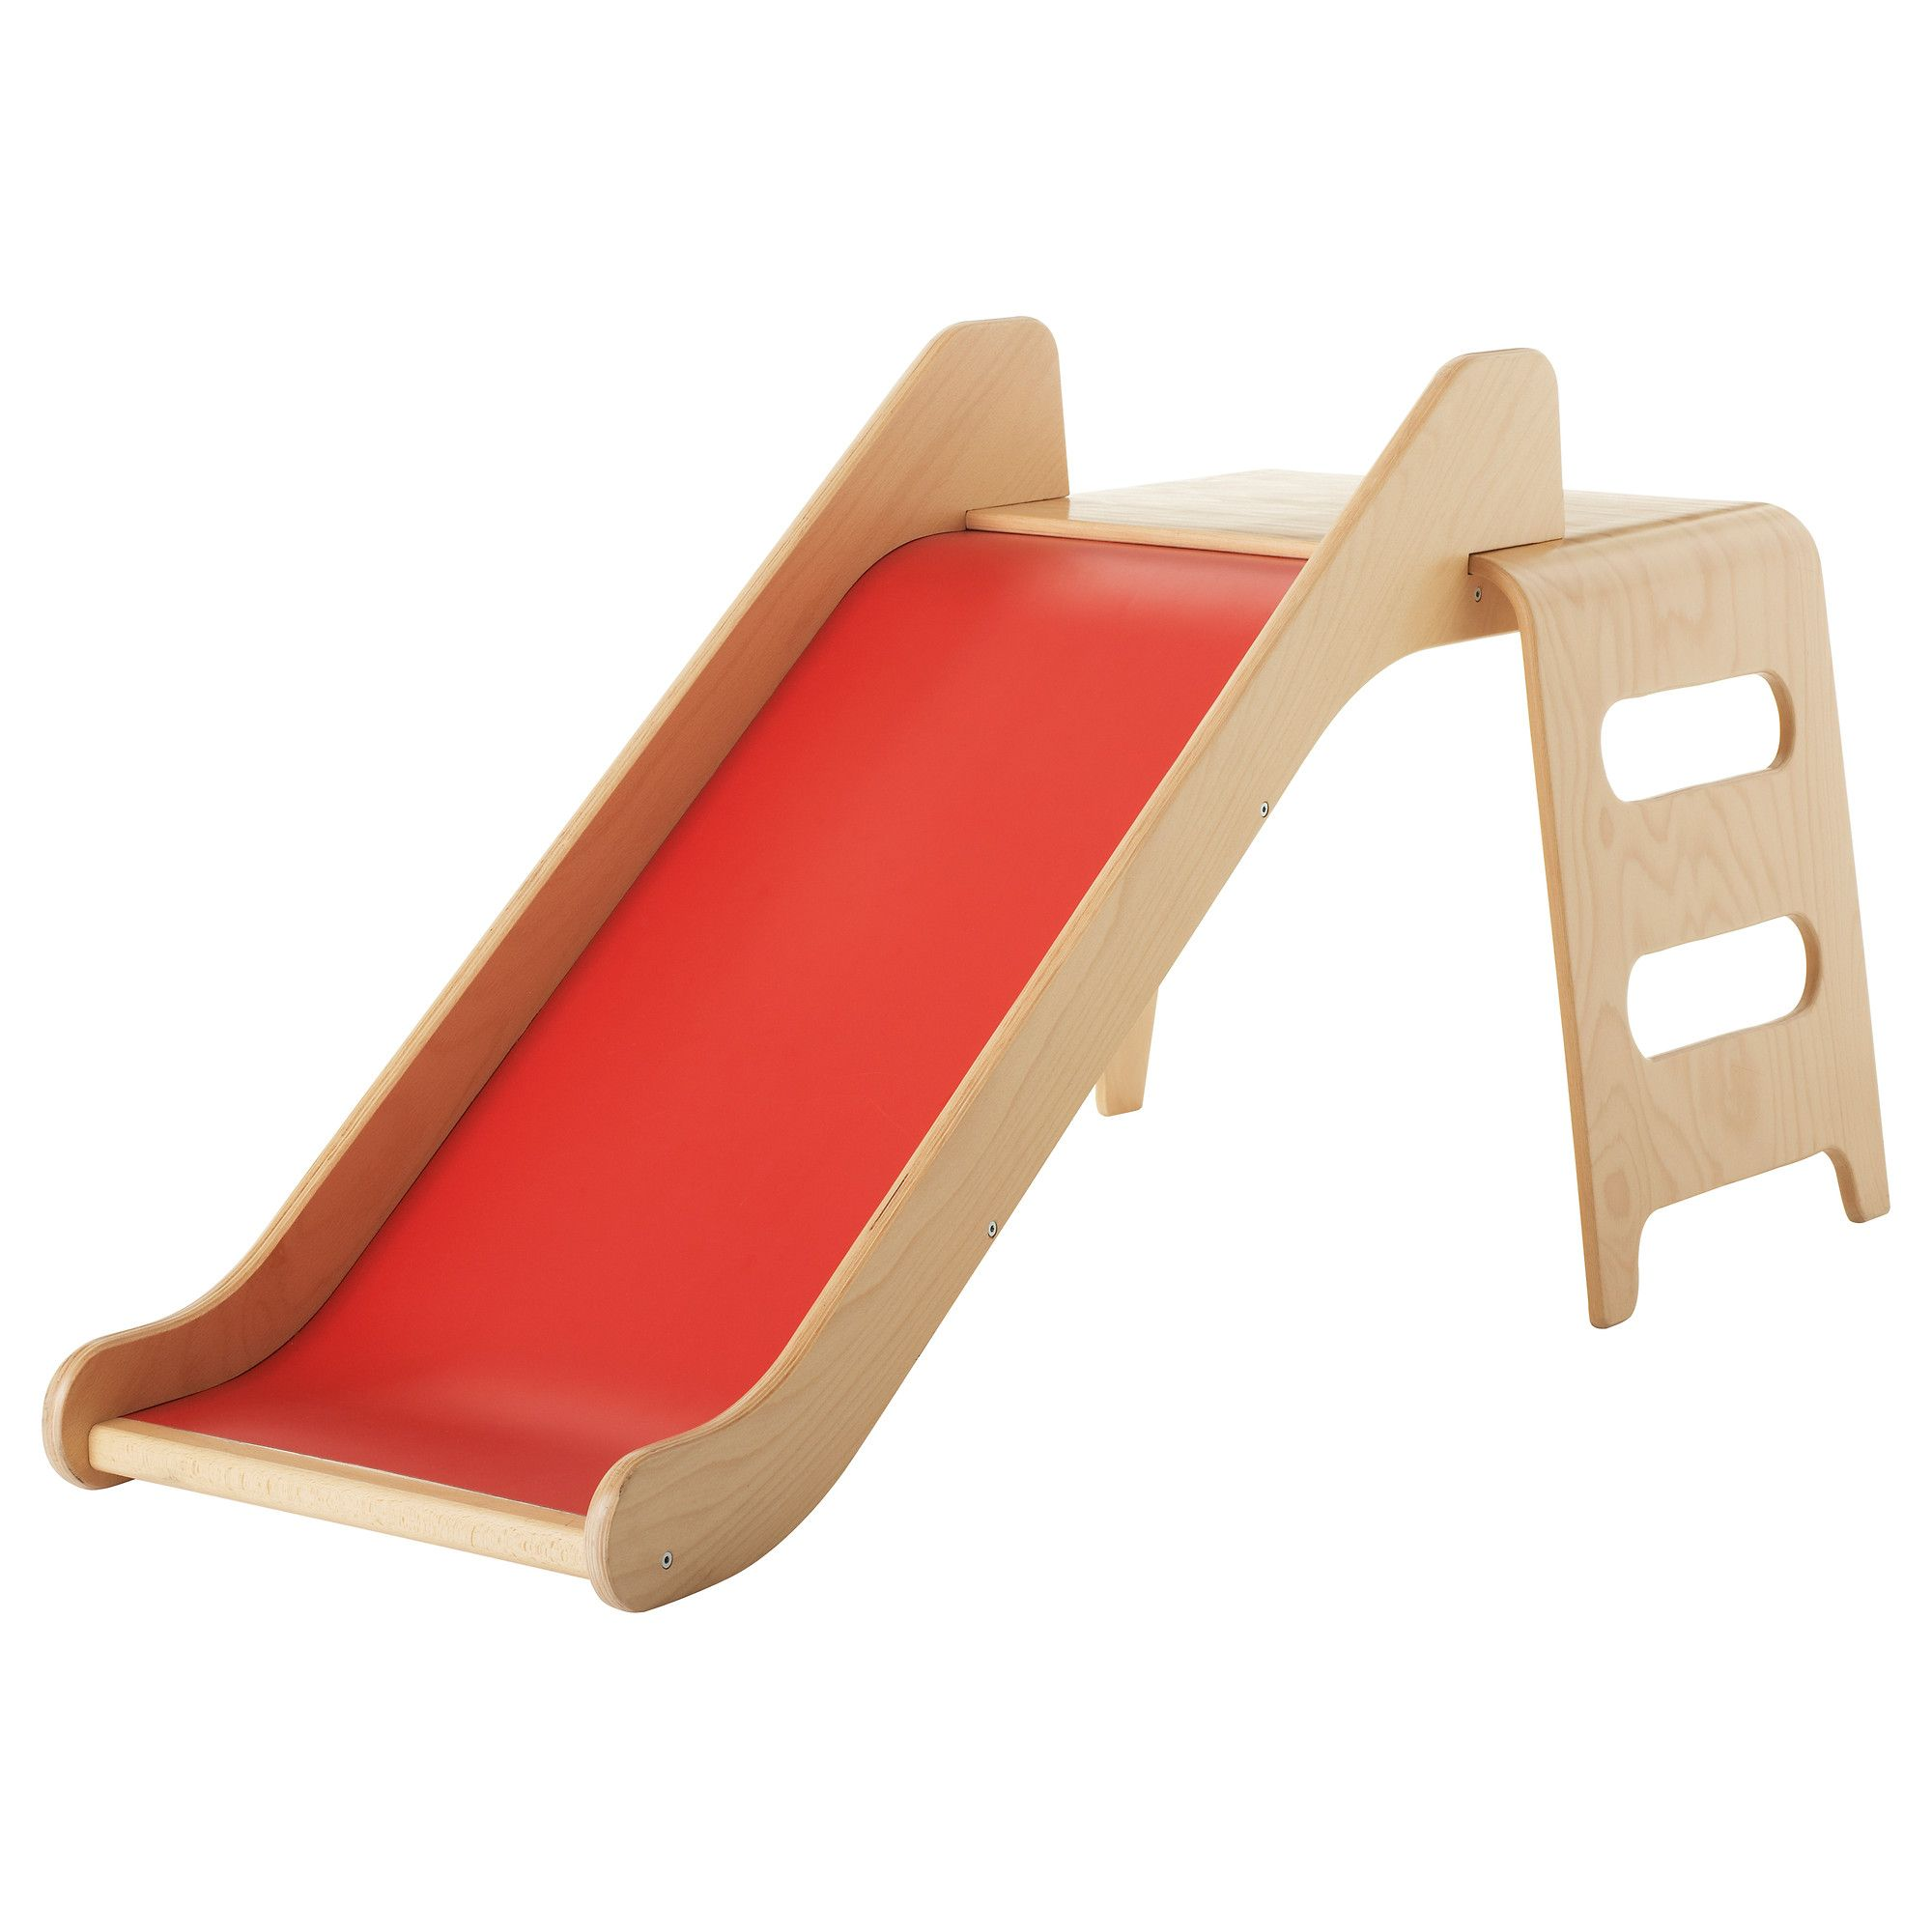 Kinderrutsche Holz Virre Slide With Ladder And Guard Rail Ikea Perfect For The